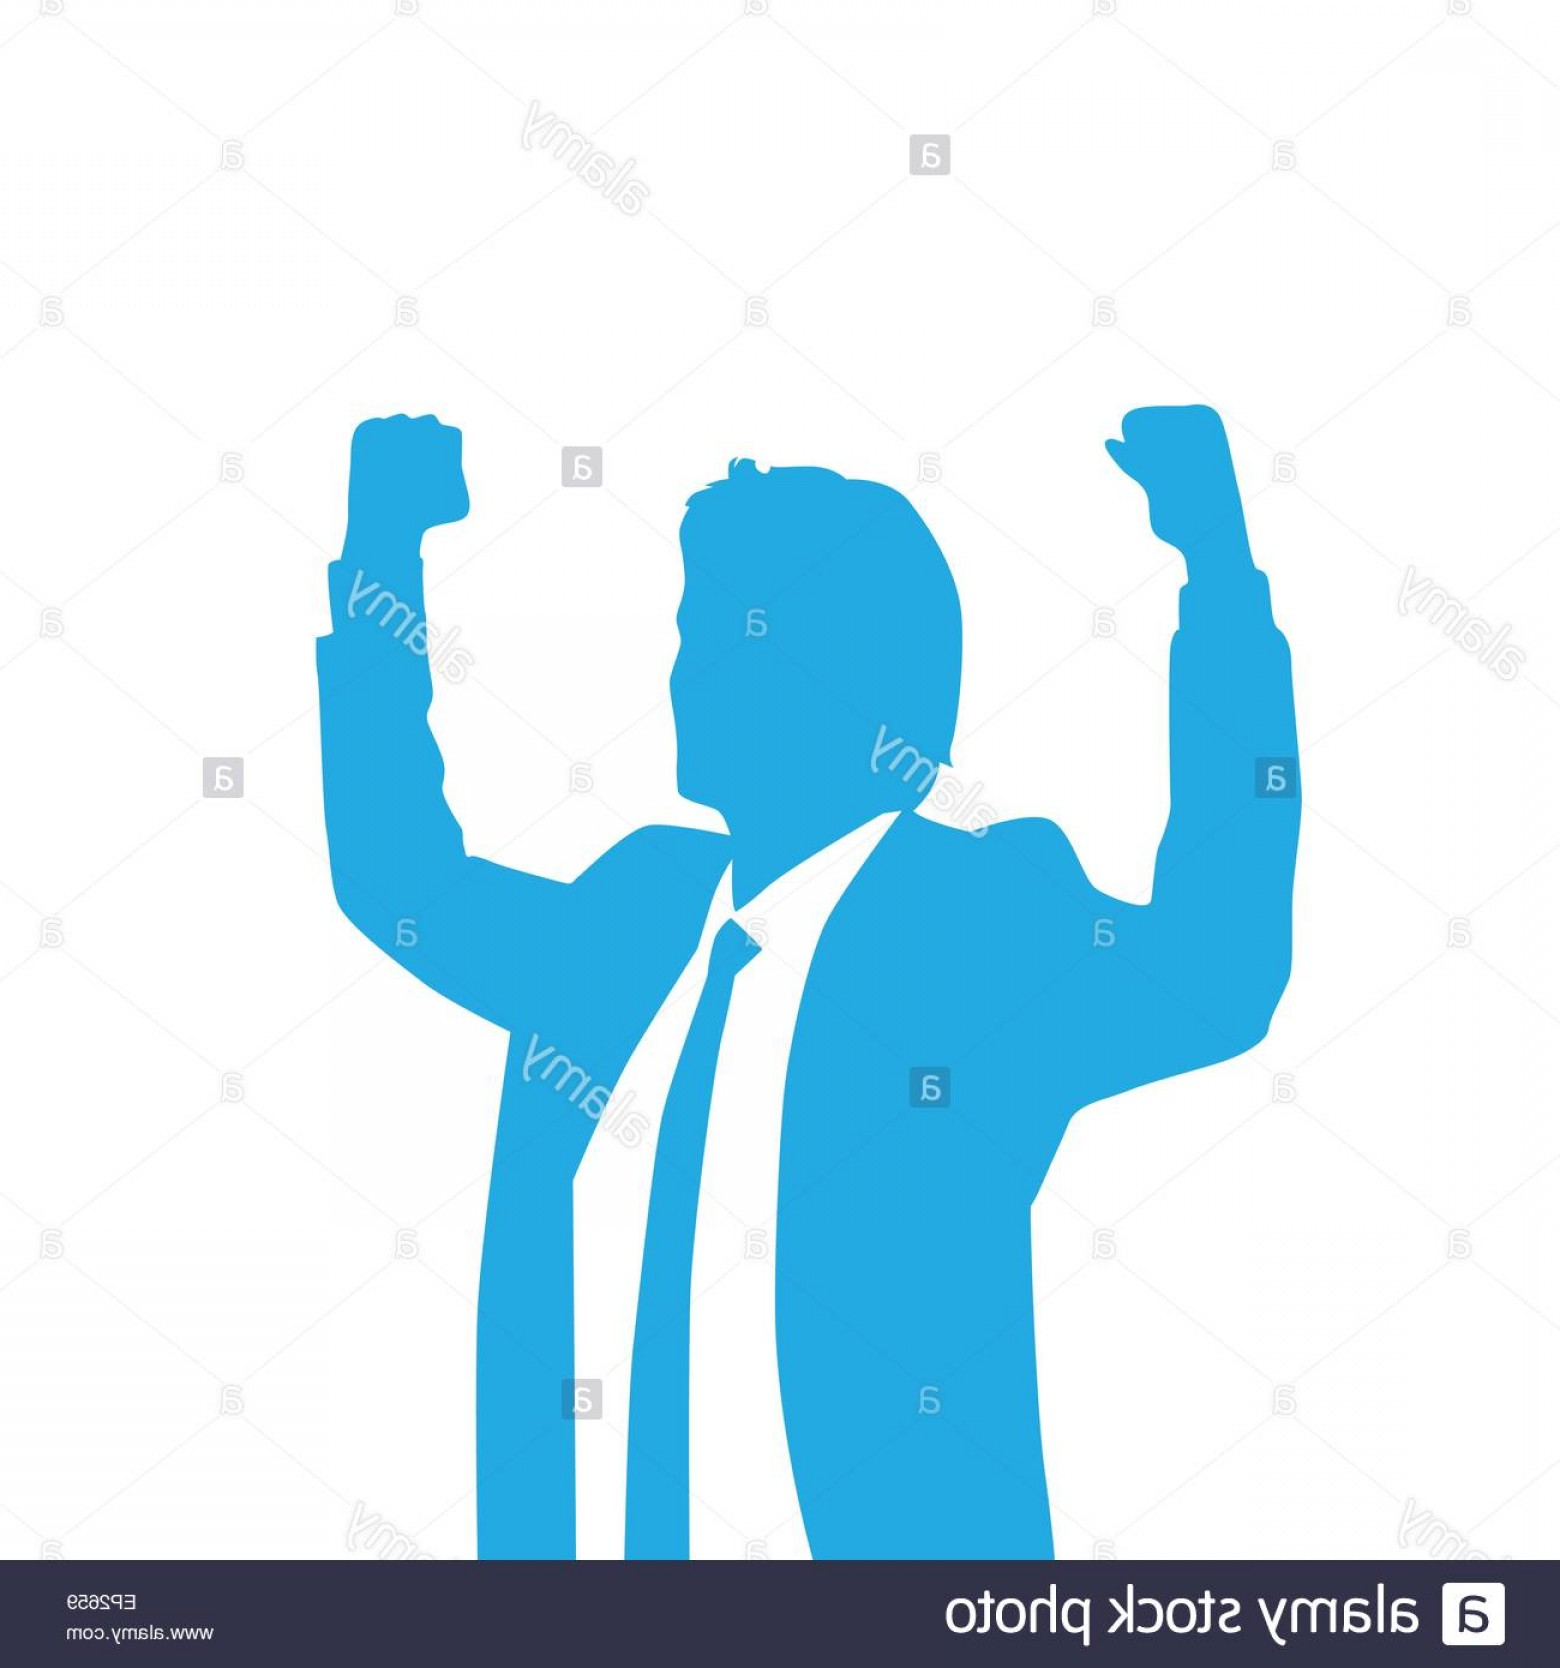 Holding Hands Up Silhouette Vector: Stock Photo Business Man Silhouette Excited Hold Hands Up